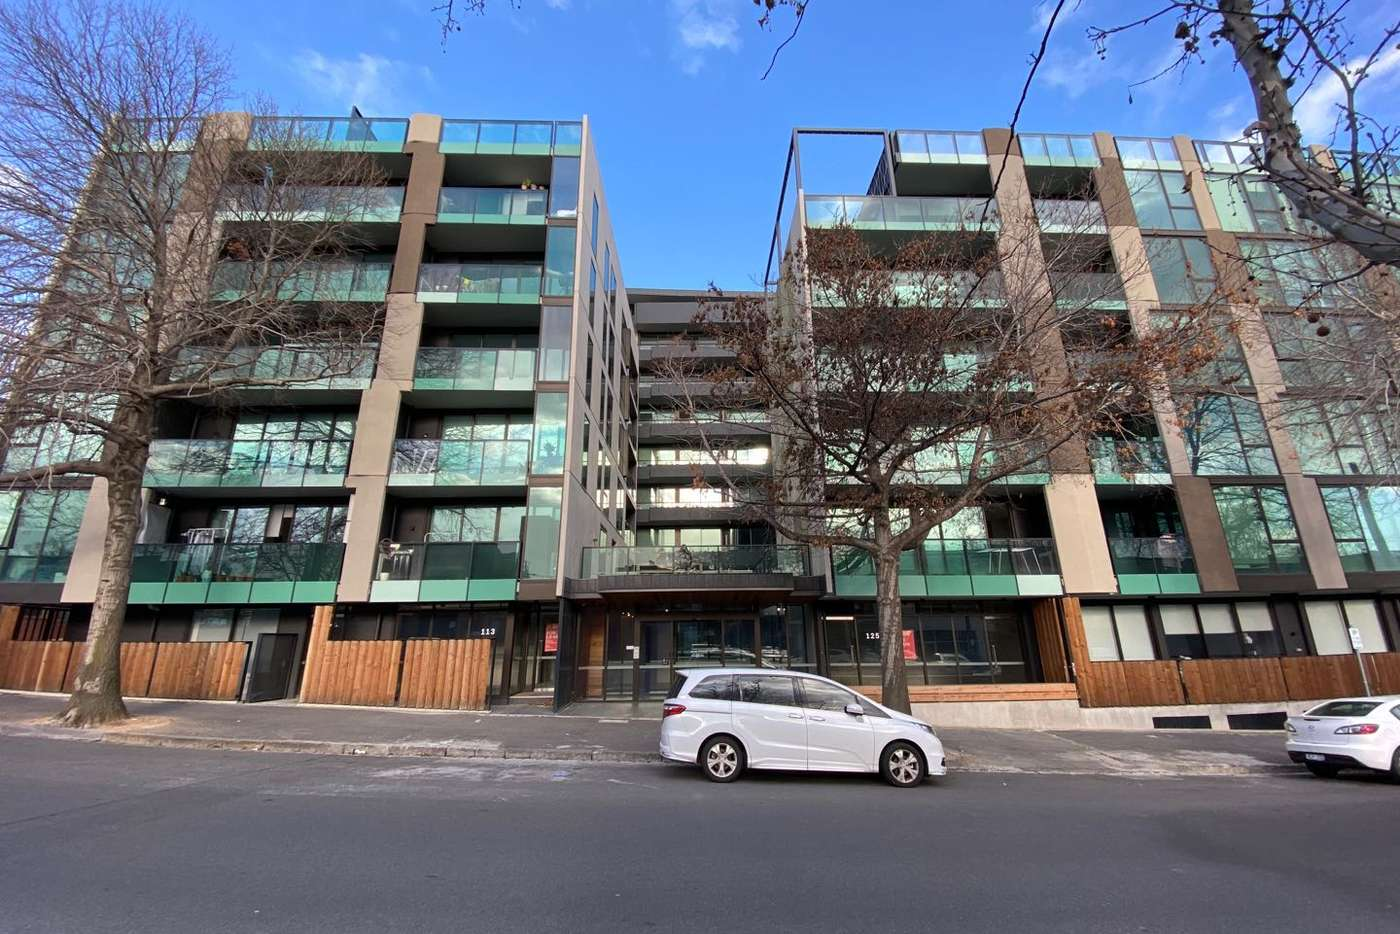 Main view of Homely apartment listing, 121 Rosslyn Street, West Melbourne VIC 3003